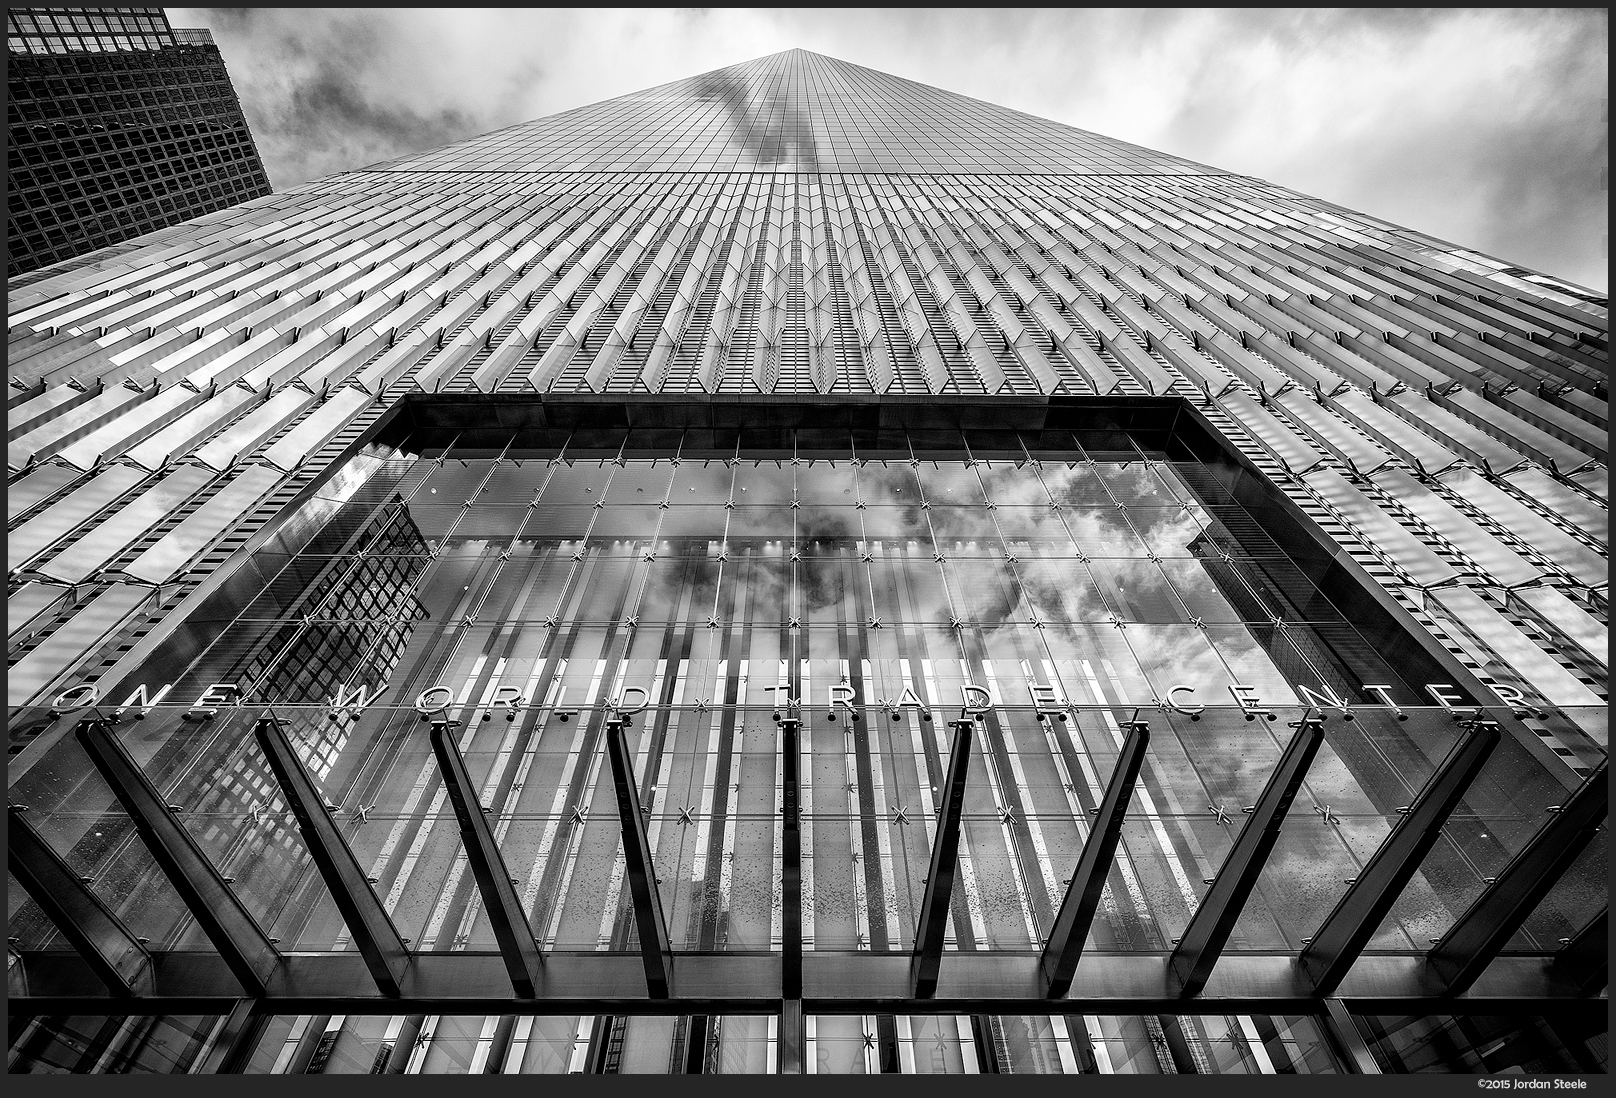 One World Trade Center - Sony A7 II with Zeiss 16-35mm f/4 @ 16mm, f/8